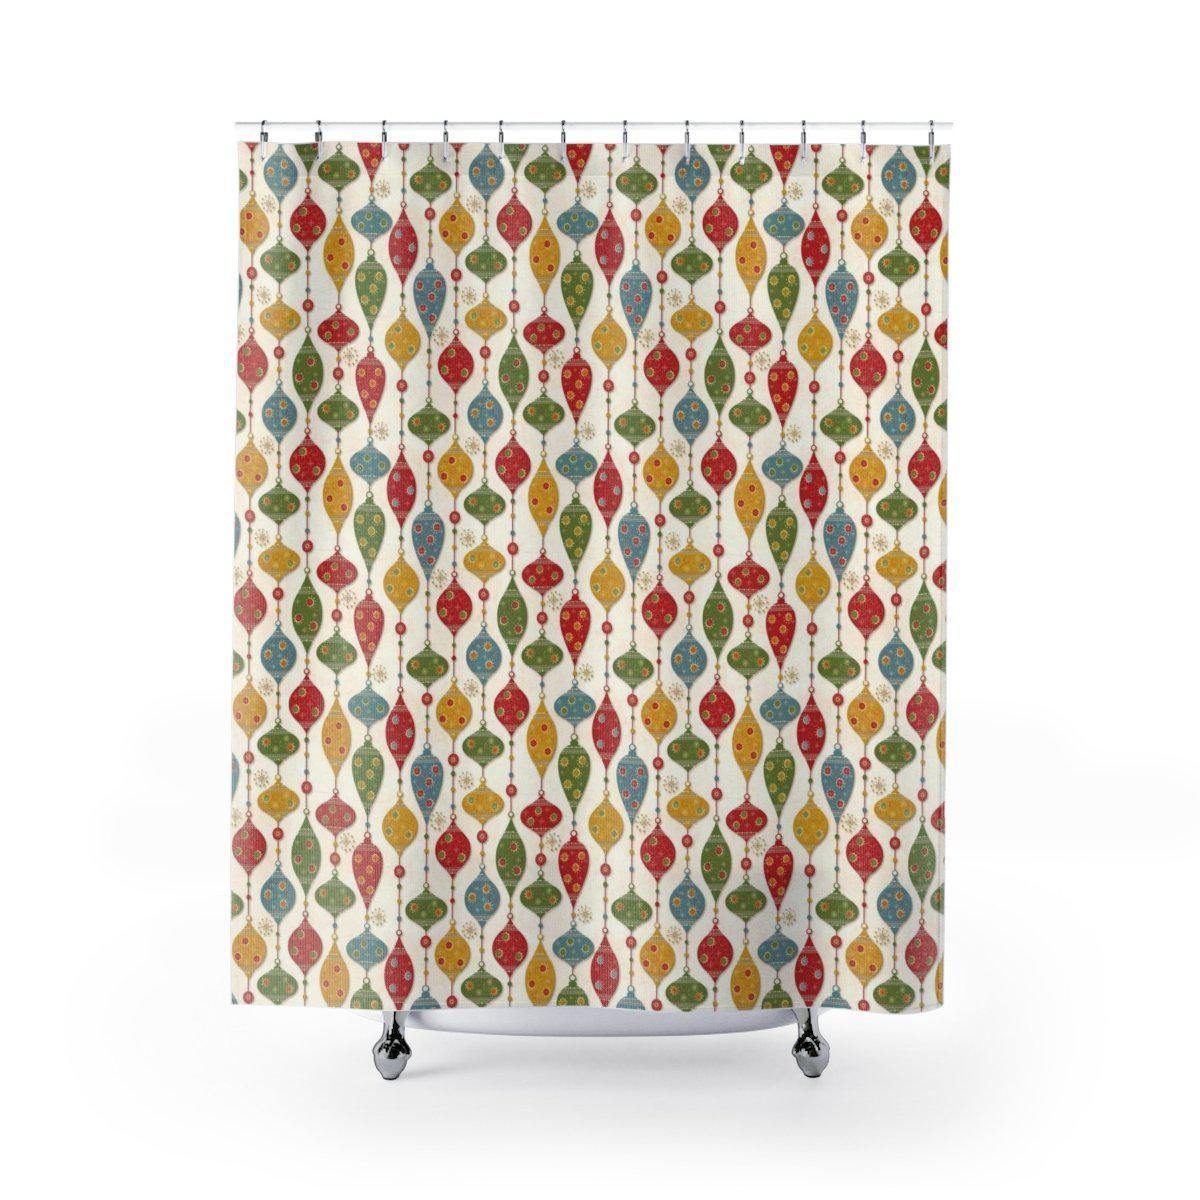 Vintage Christmas Shower Curtain - Shower Curtains - W.FRANCIS